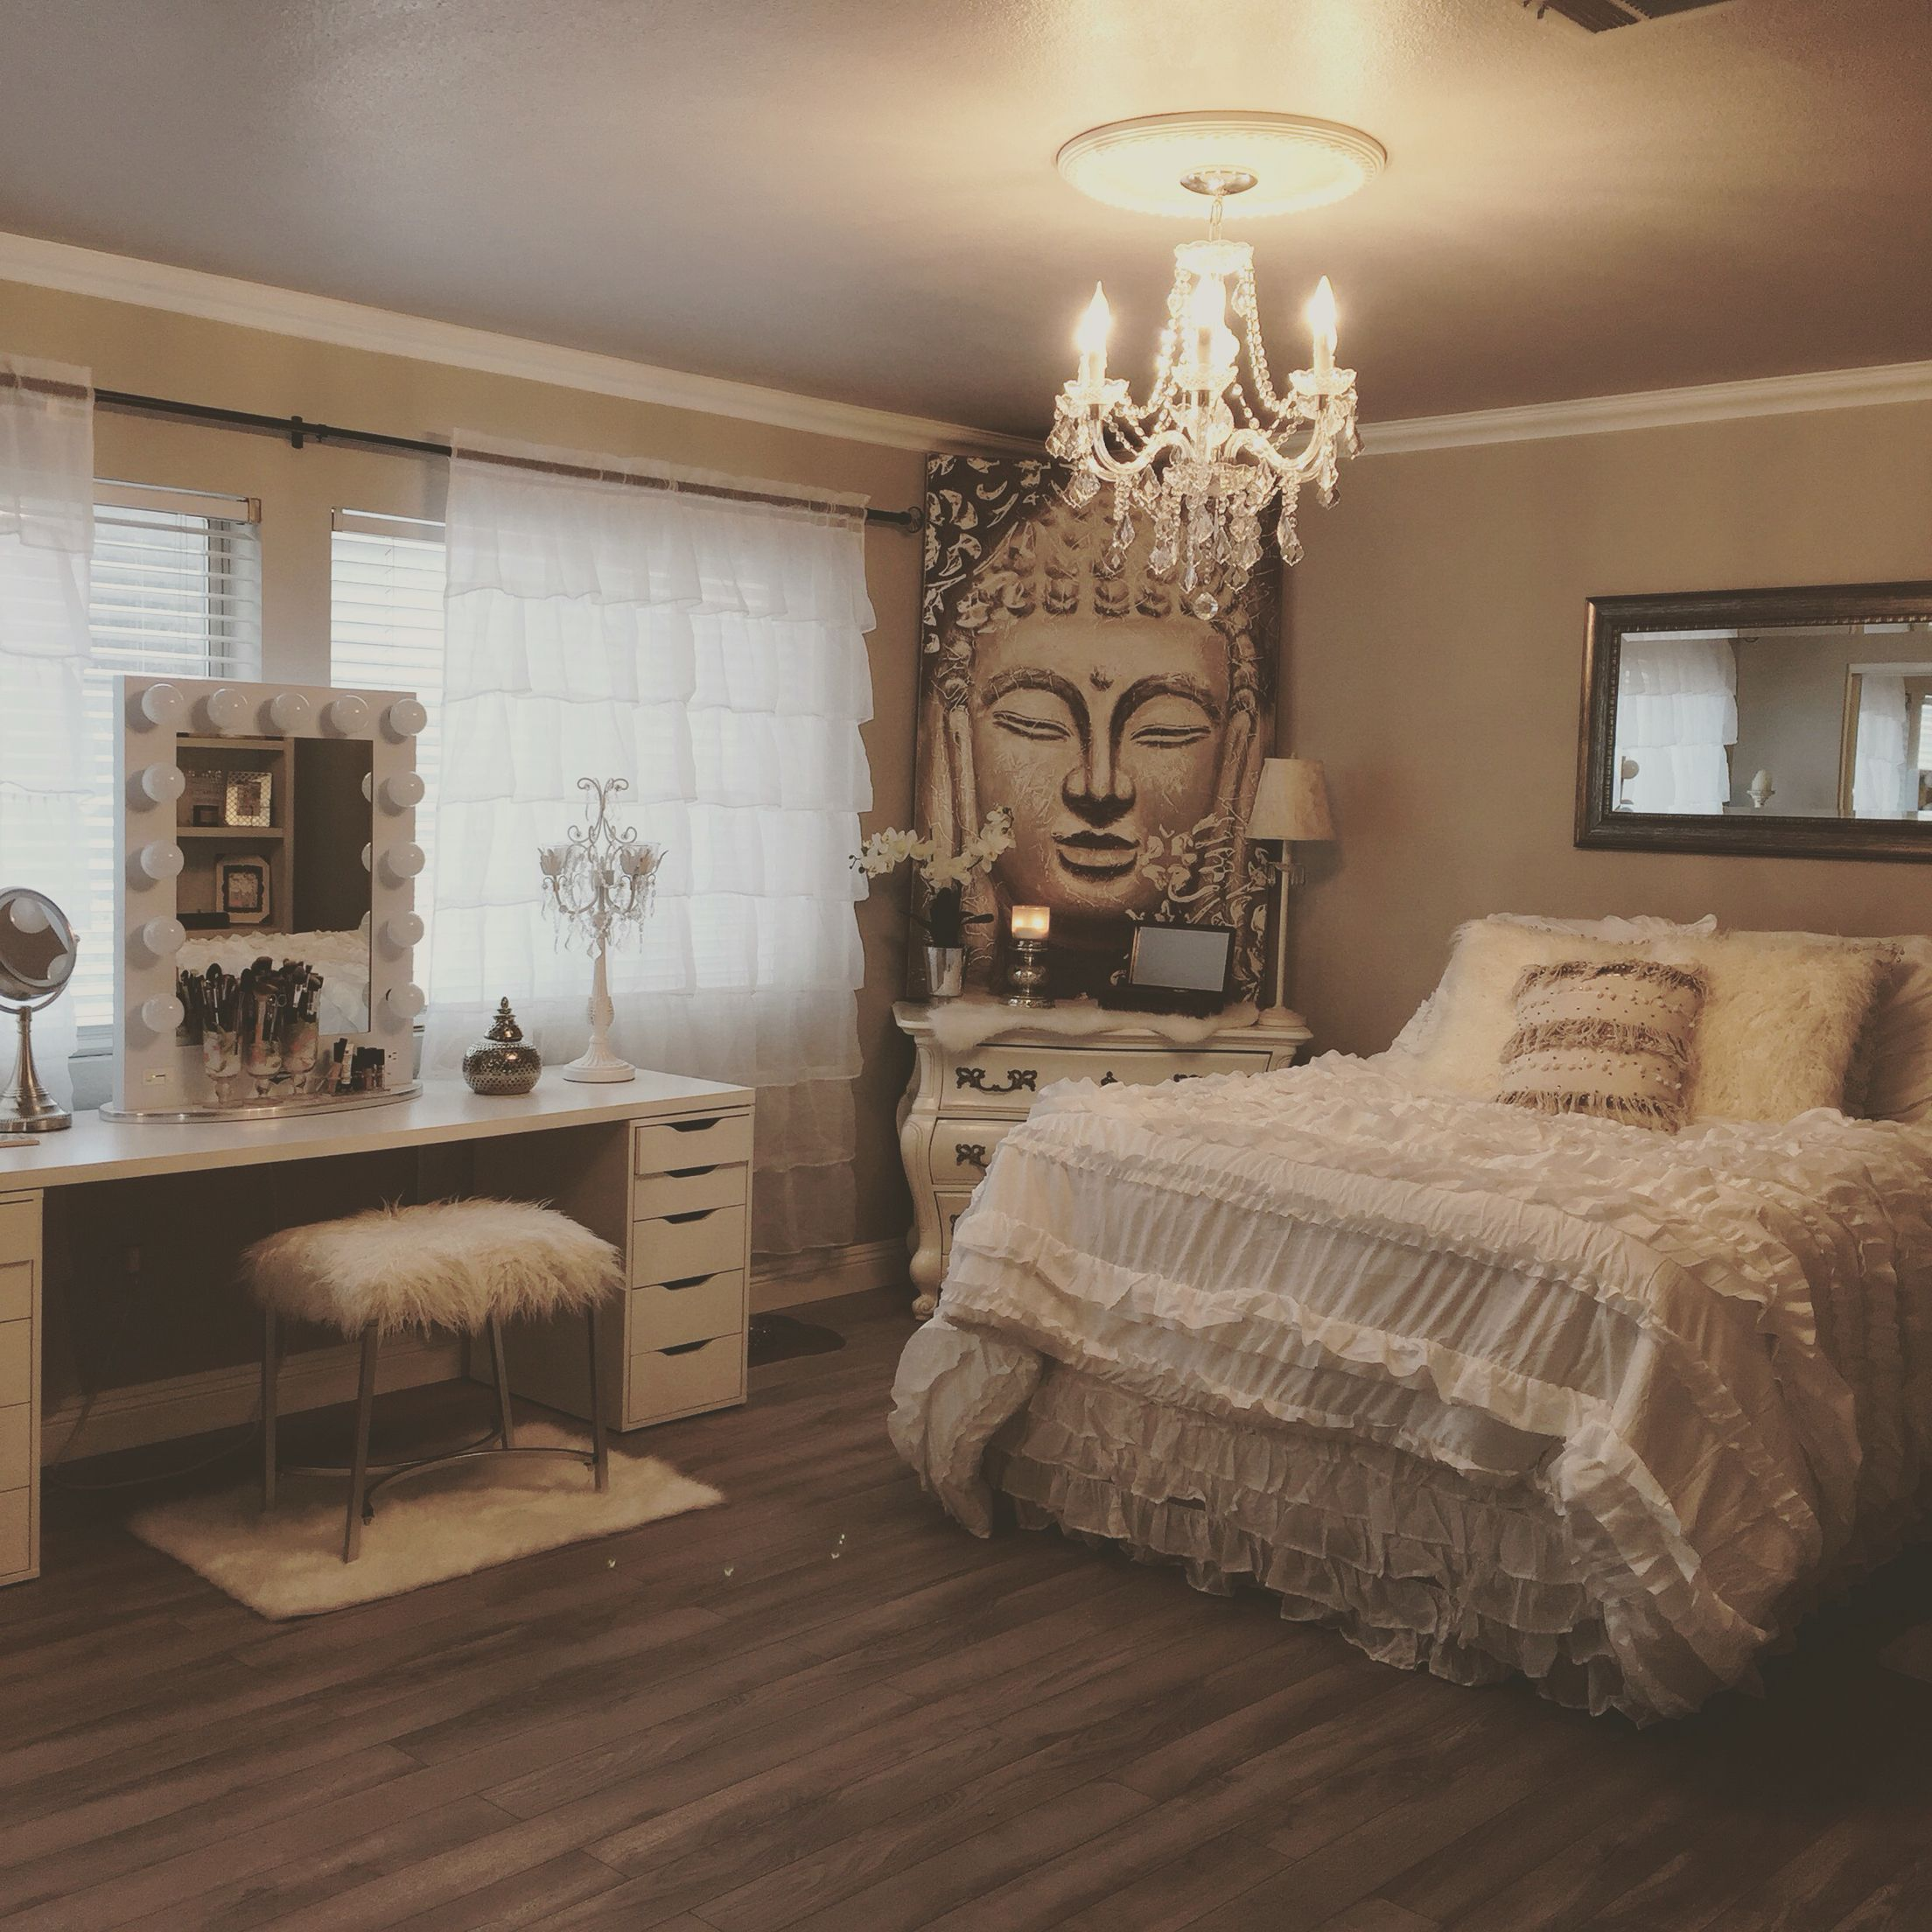 Shabby chic meets zen glam my new bedroom pinterest for Bedroom ideas zen